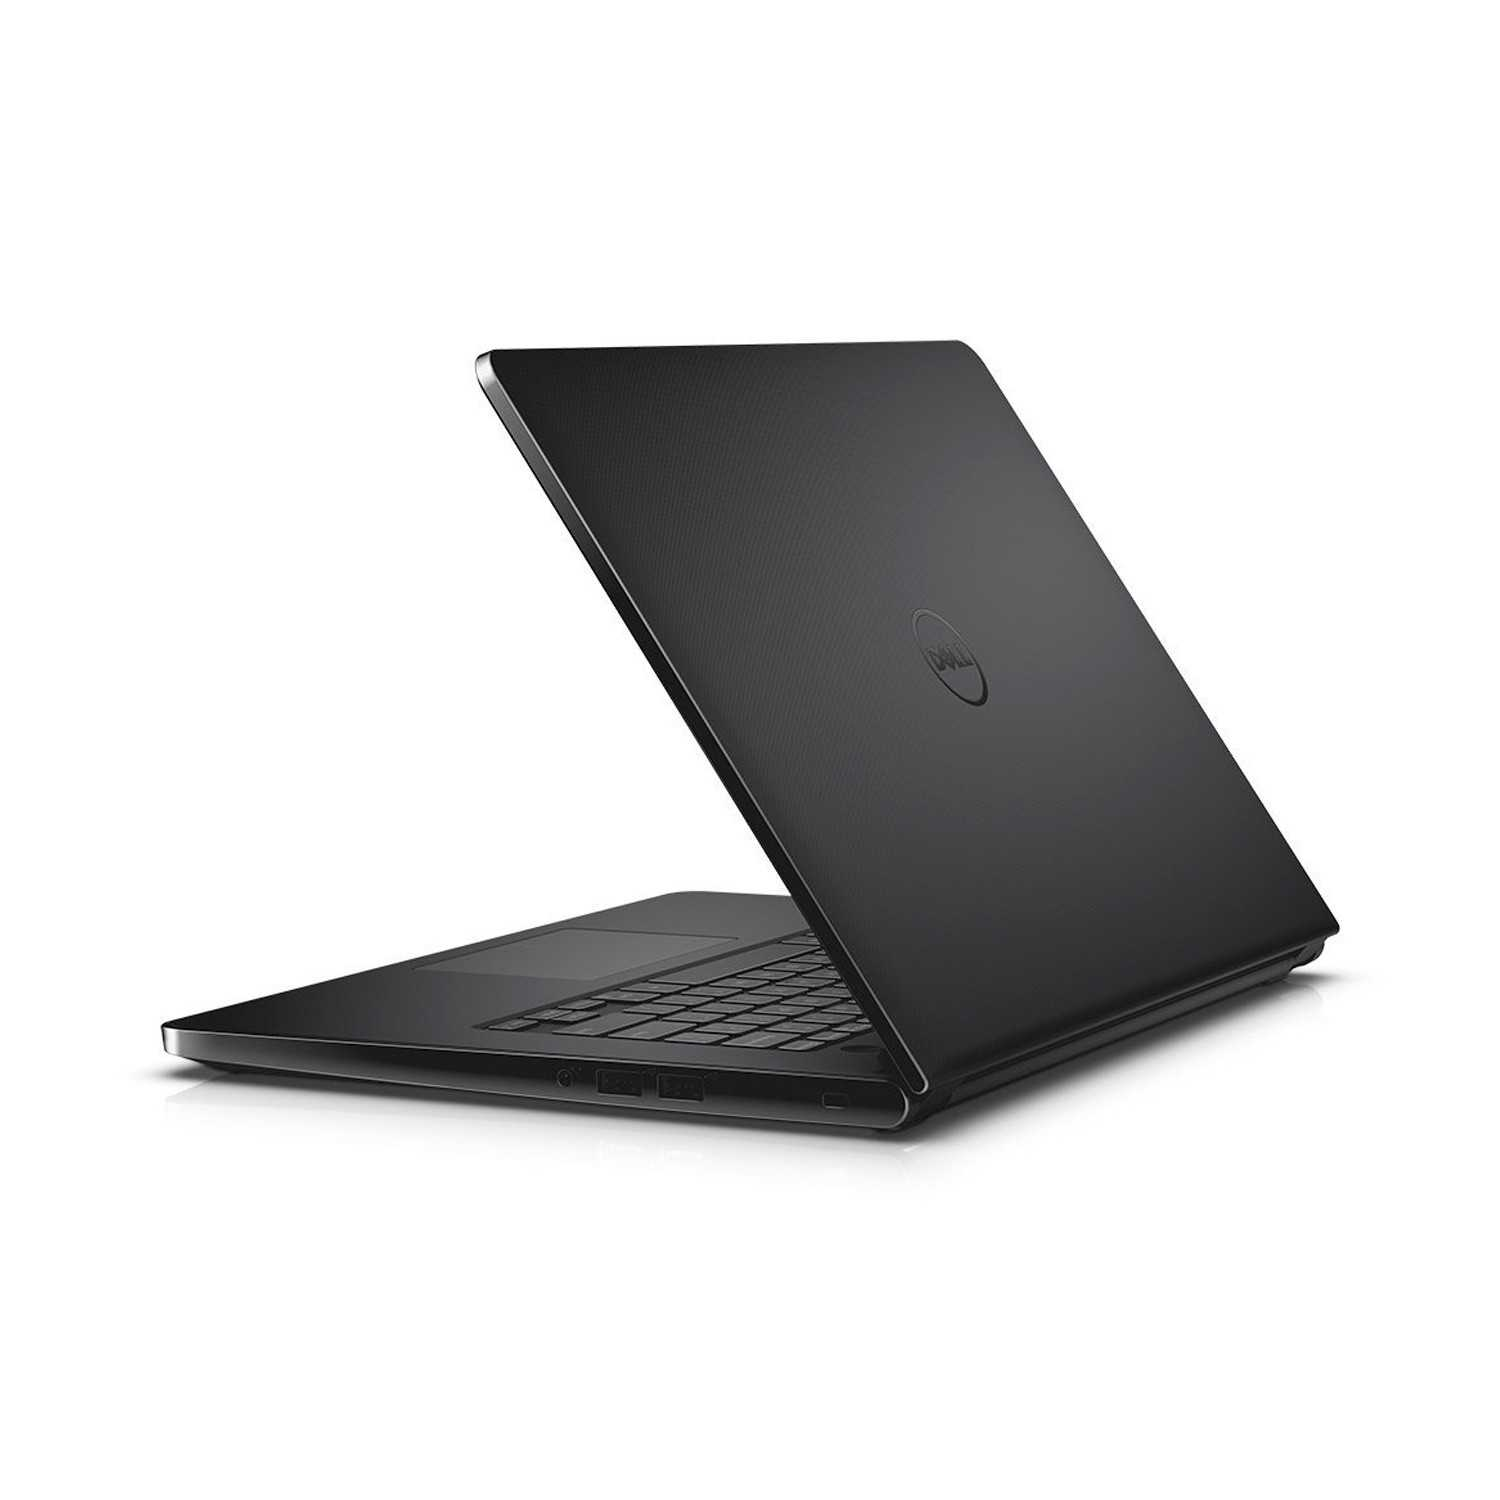 Dell Inspiron 15-5566 Intel Core i7-7500U X2 2.7GHz 8GB 1TB 15.6', Black (Certified Refurbished)